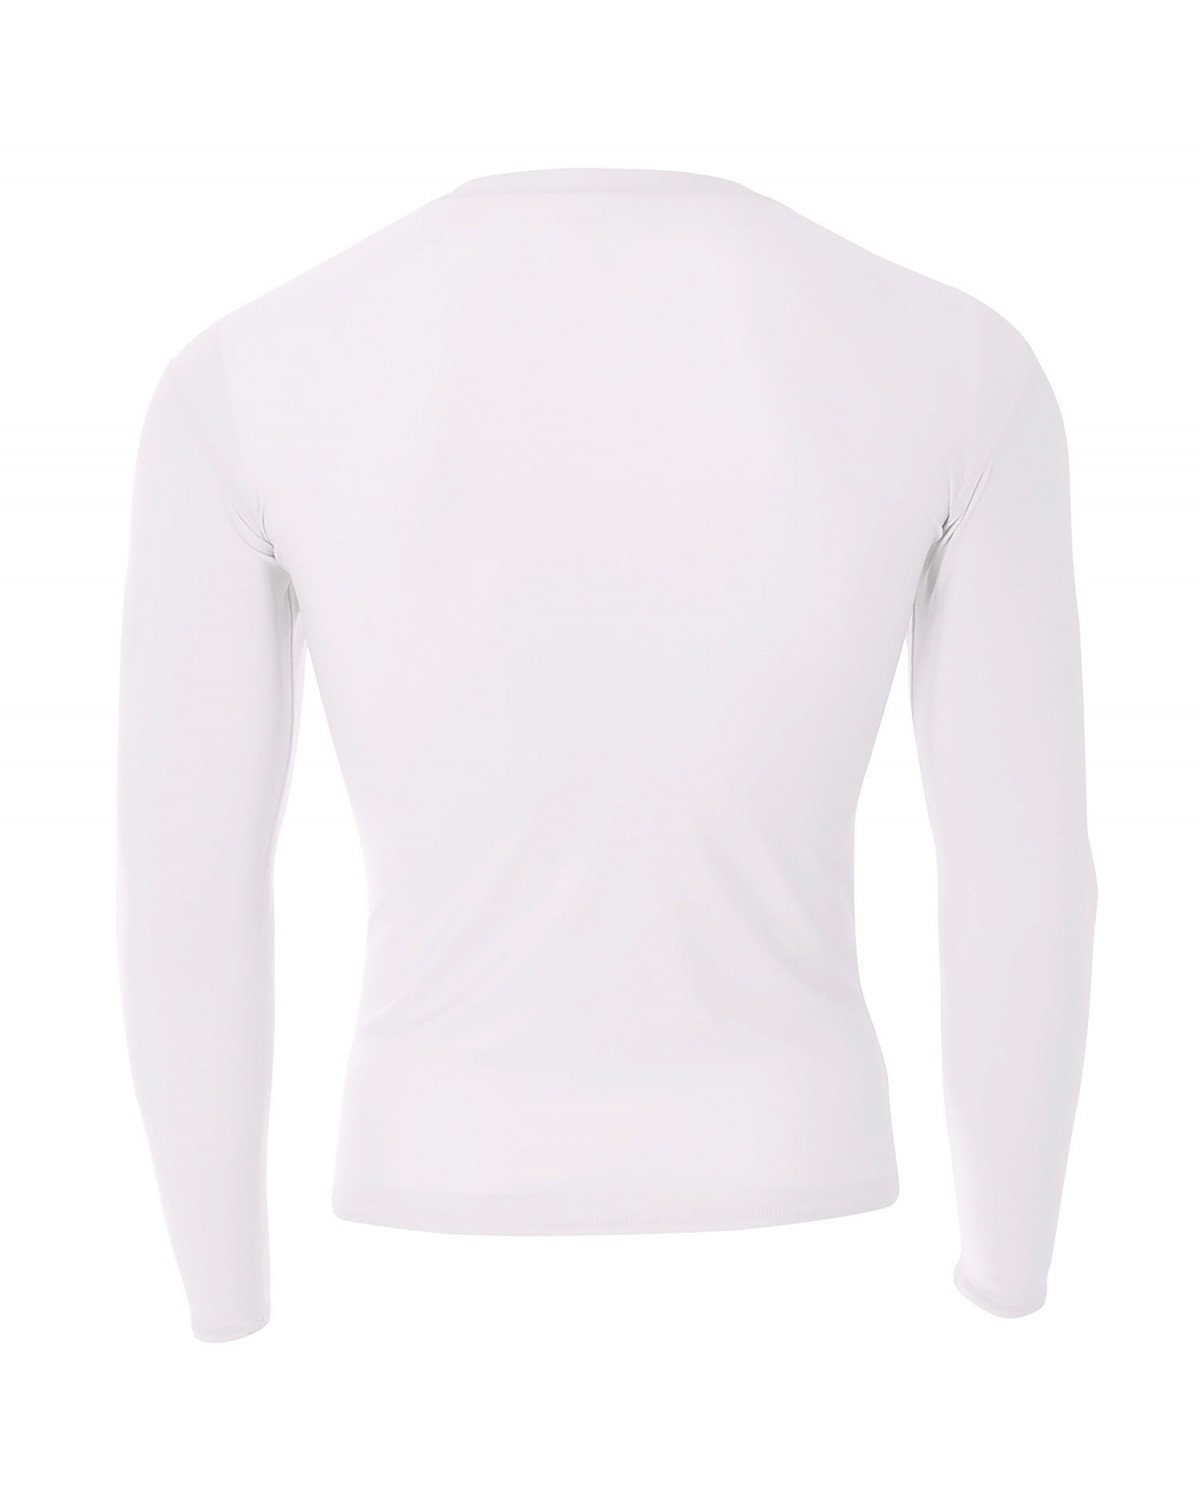 SJ101A Alleson Athletic WHITE